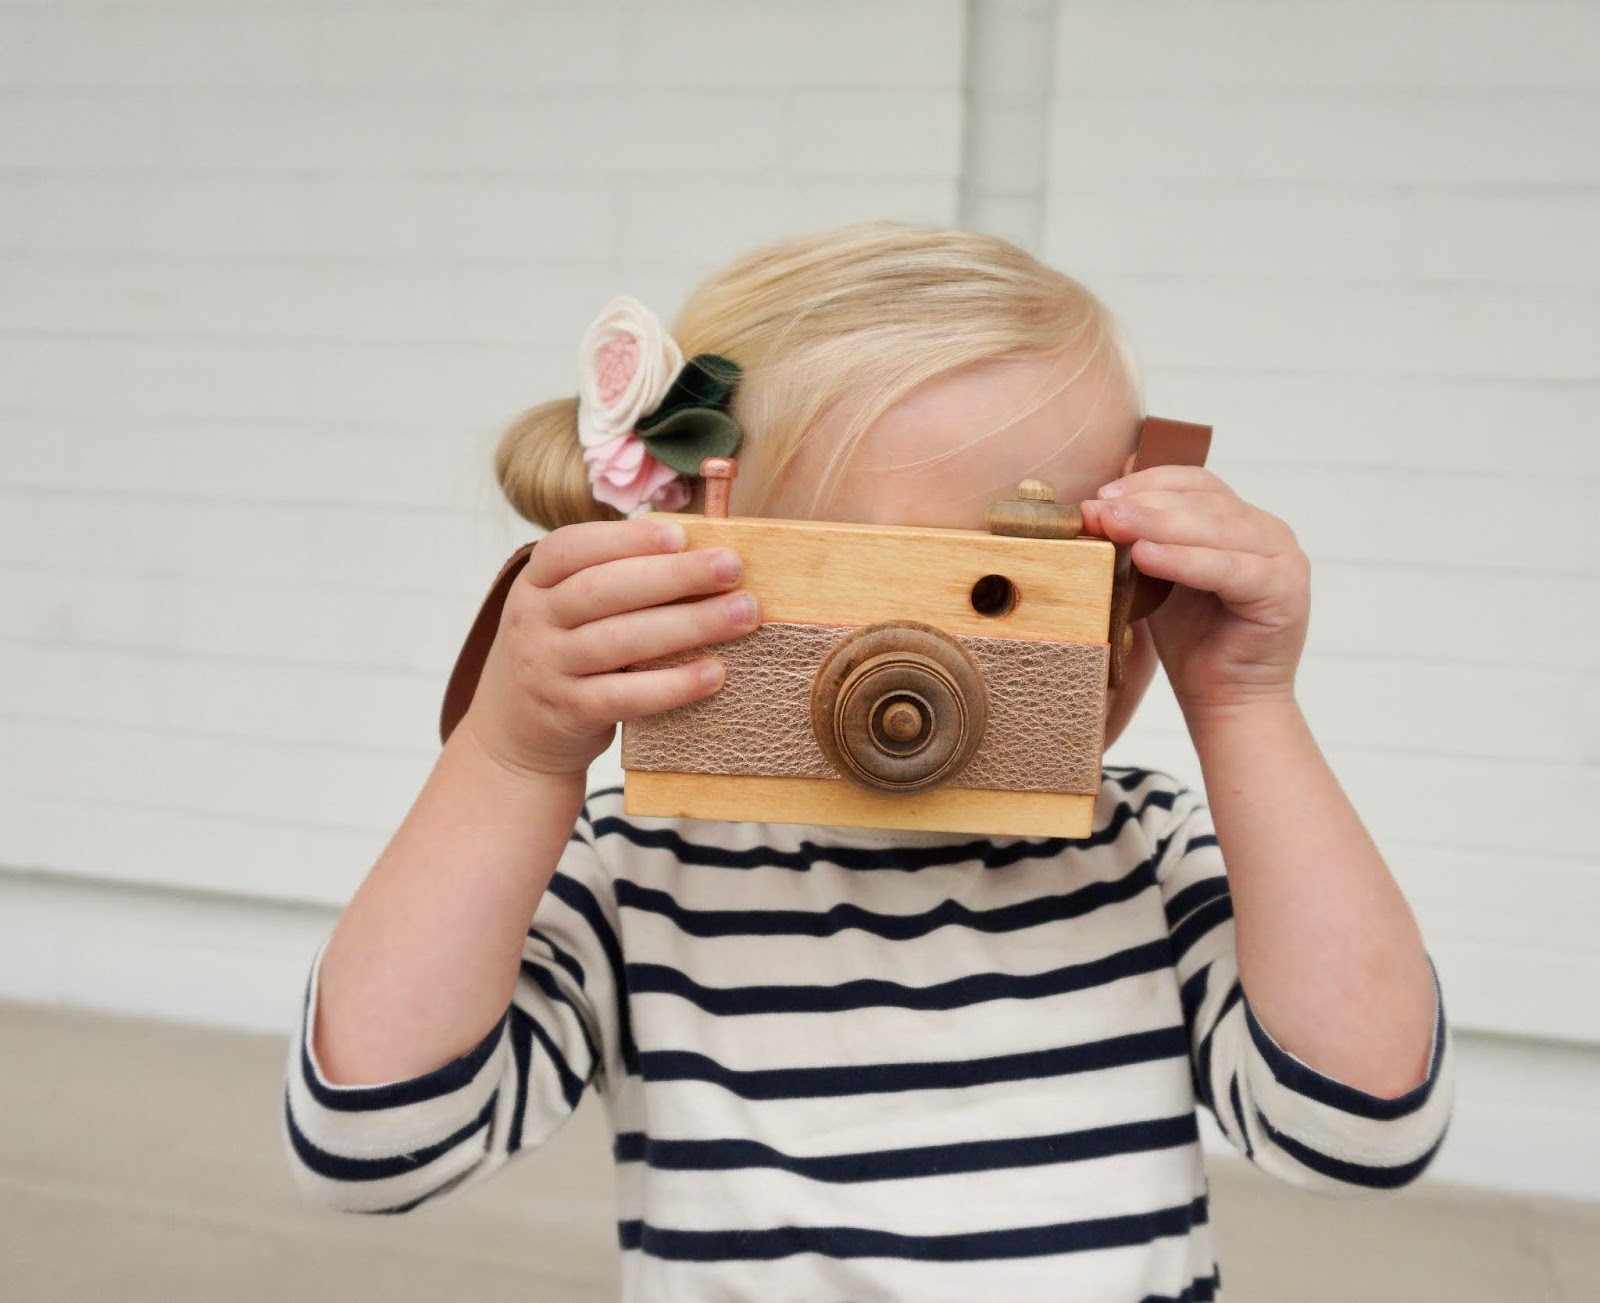 flora & peg wooden toy camera rose gold metallic